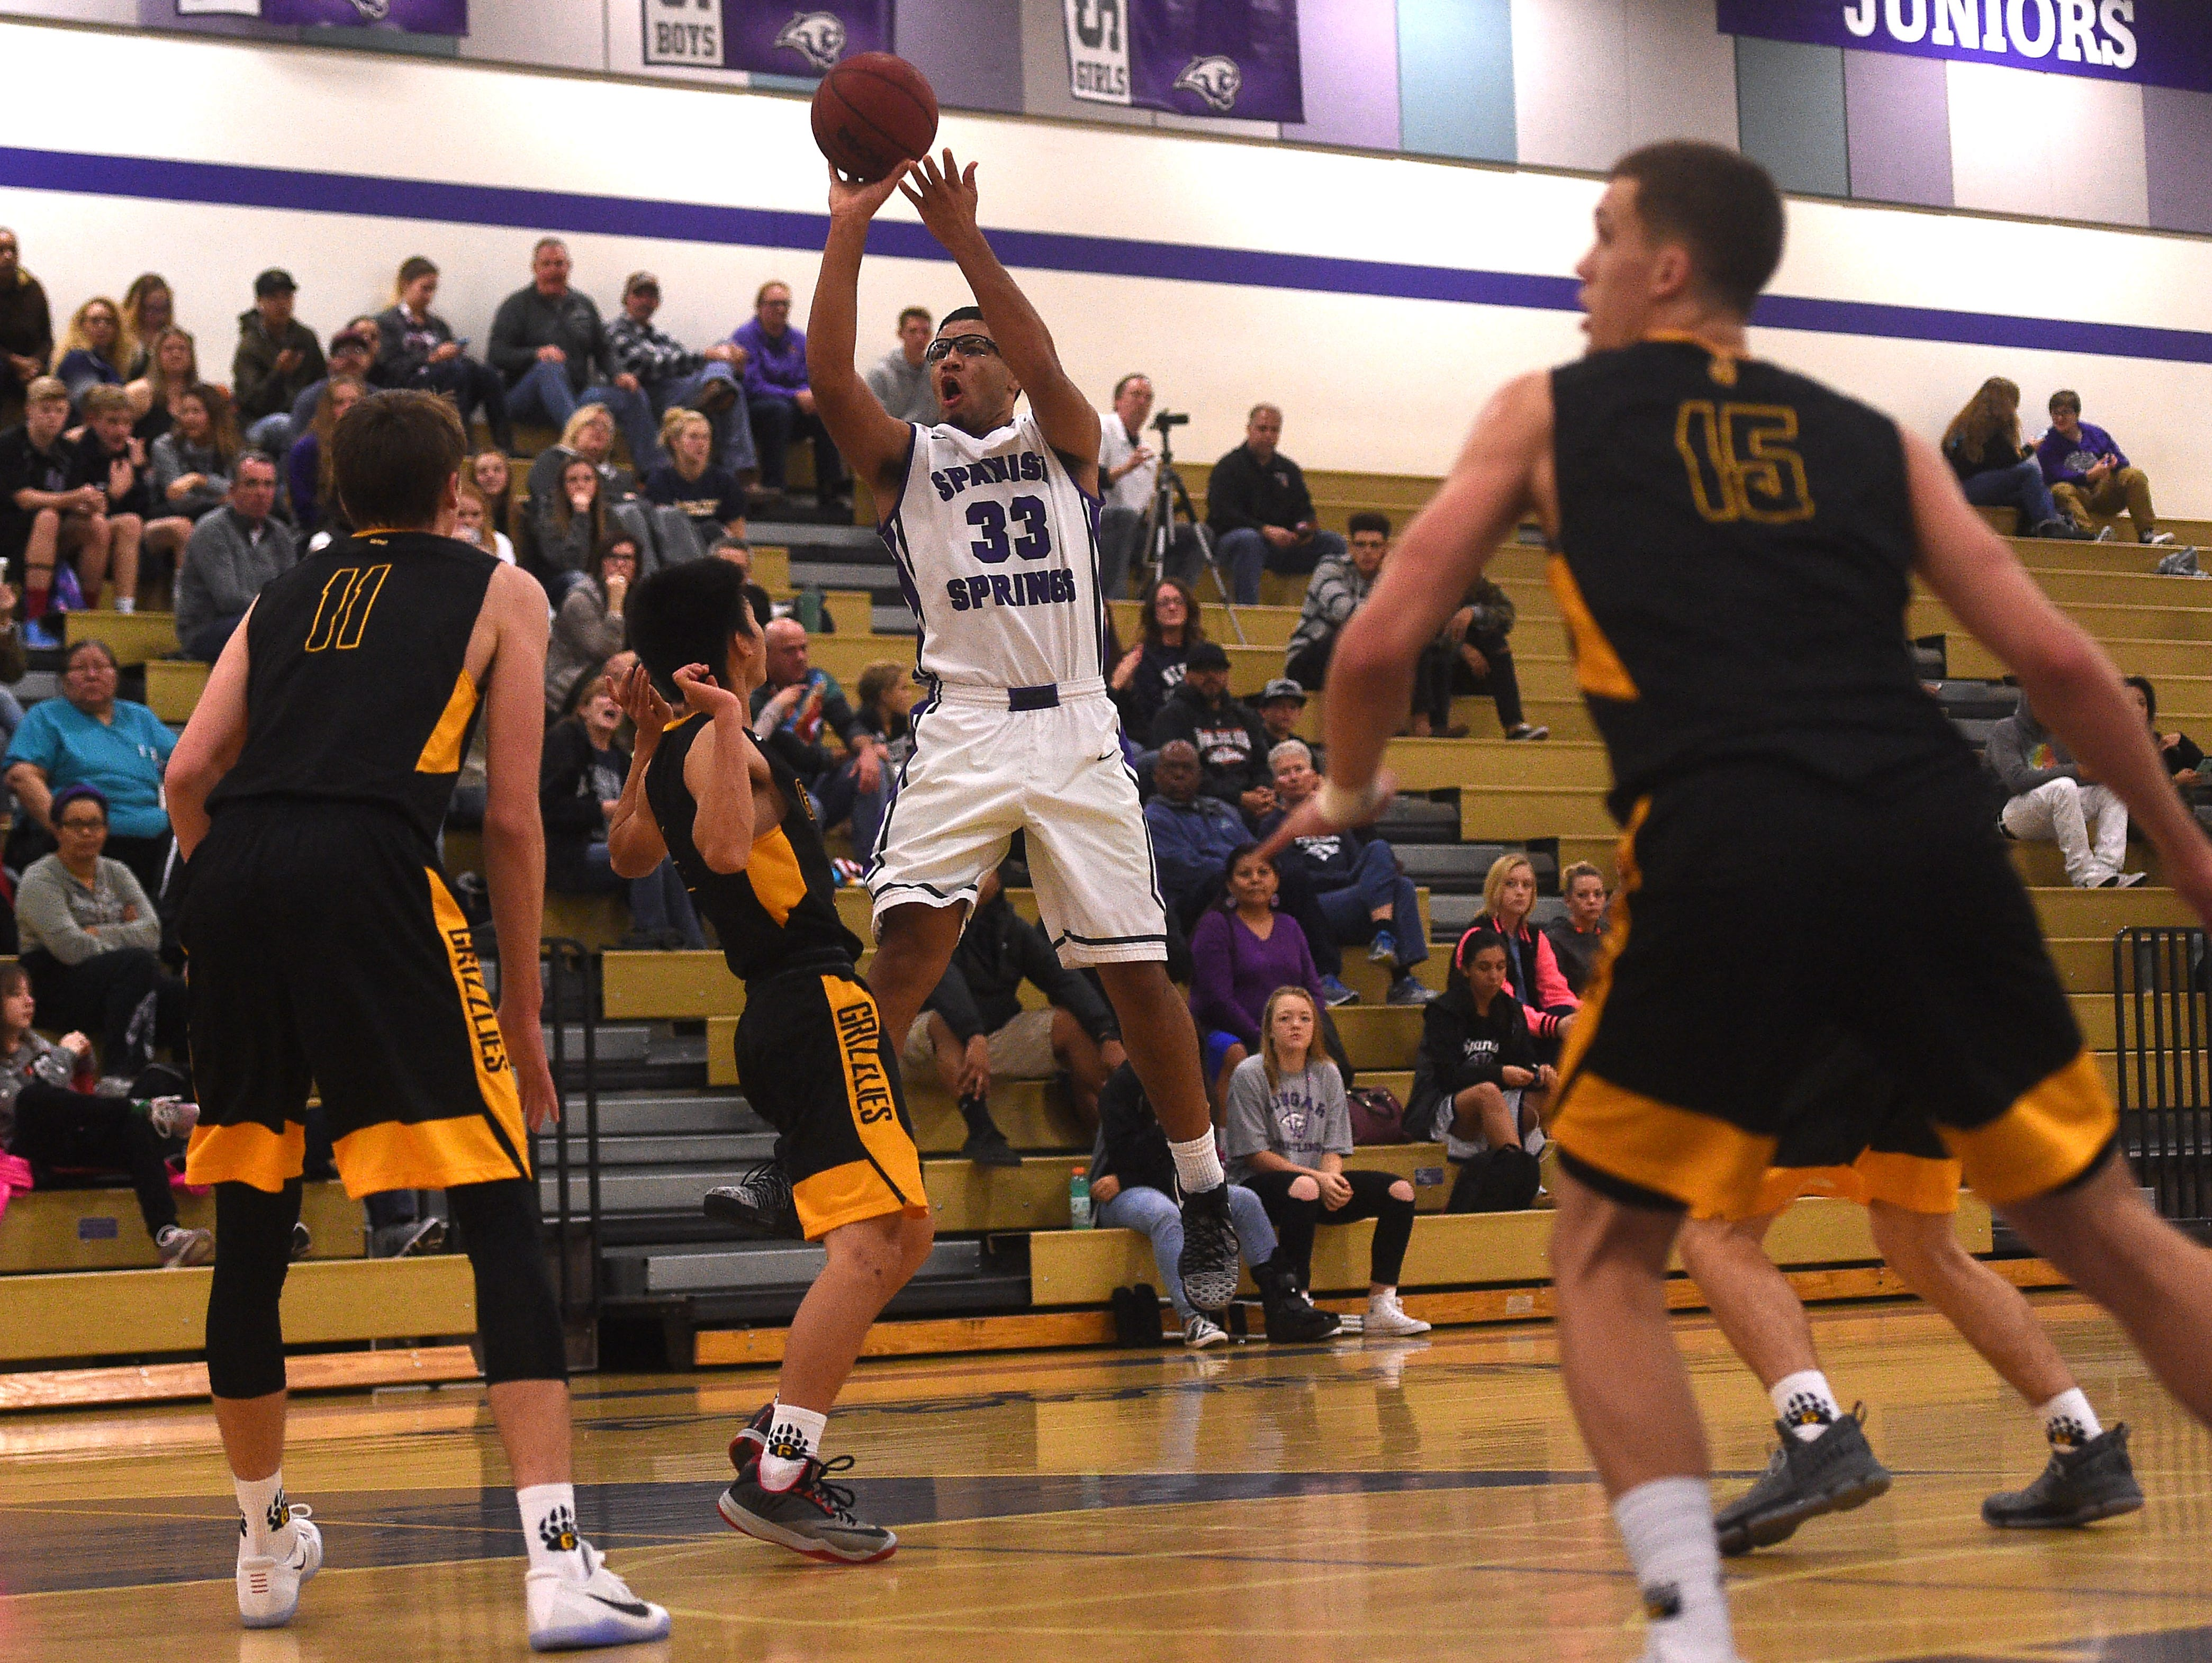 Spanish Springs' Marcus Loadholt (33) shoots while taking on Galena during their basketball game in Spanish Springs on Dec. 16. Dillon Voyles (15) is good friends with Loadholt.